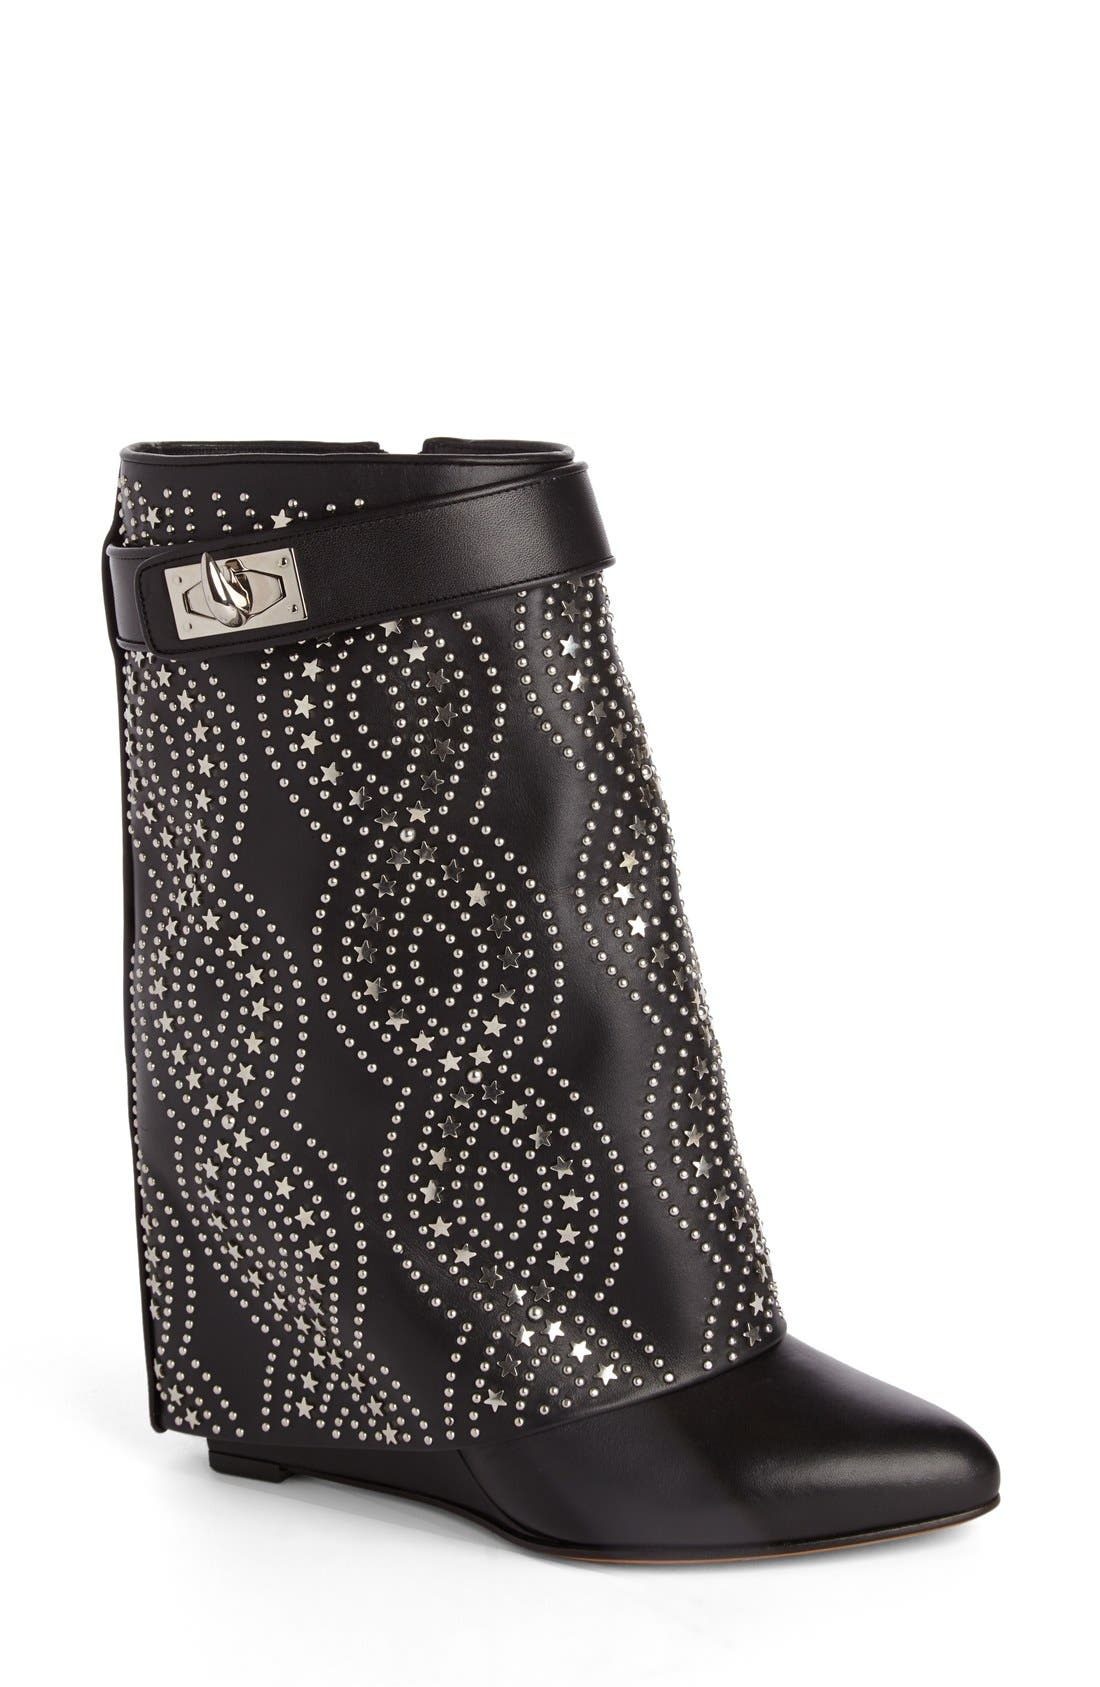 Alternate Image 1 Selected - Givenchy Studded Shark Tooth Pant Leg Bootie (Women)